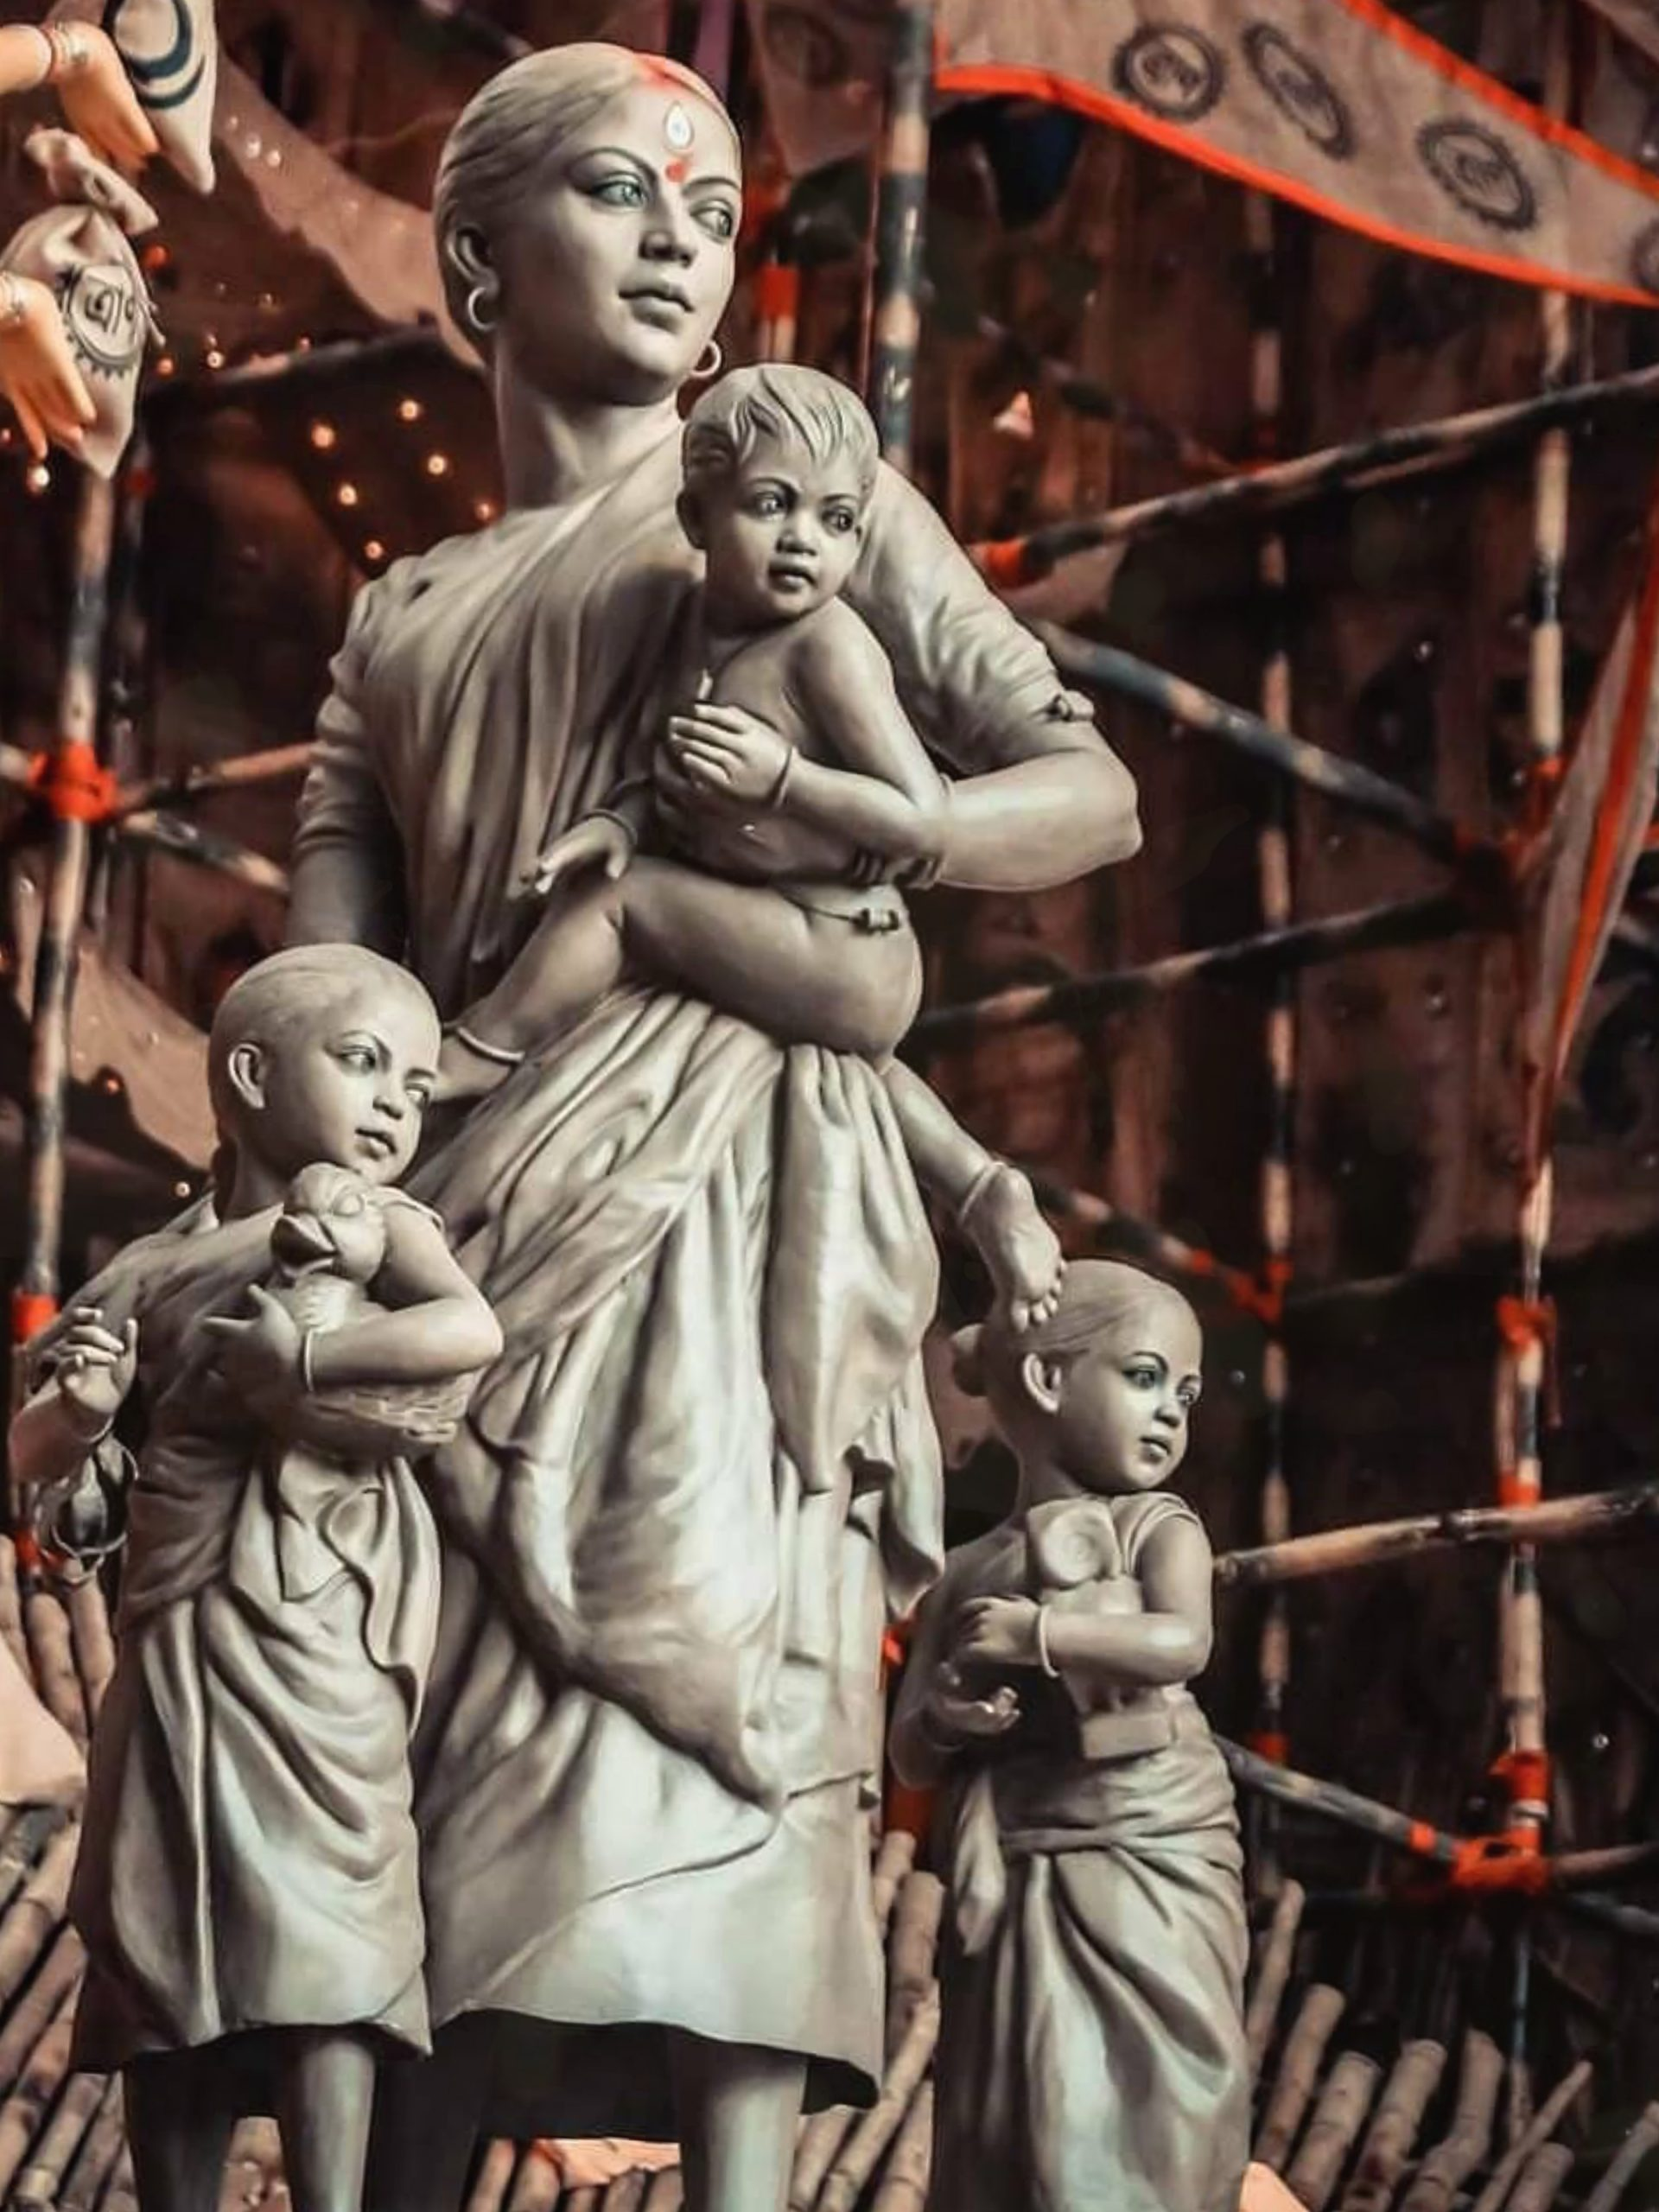 Statues of a woman and children